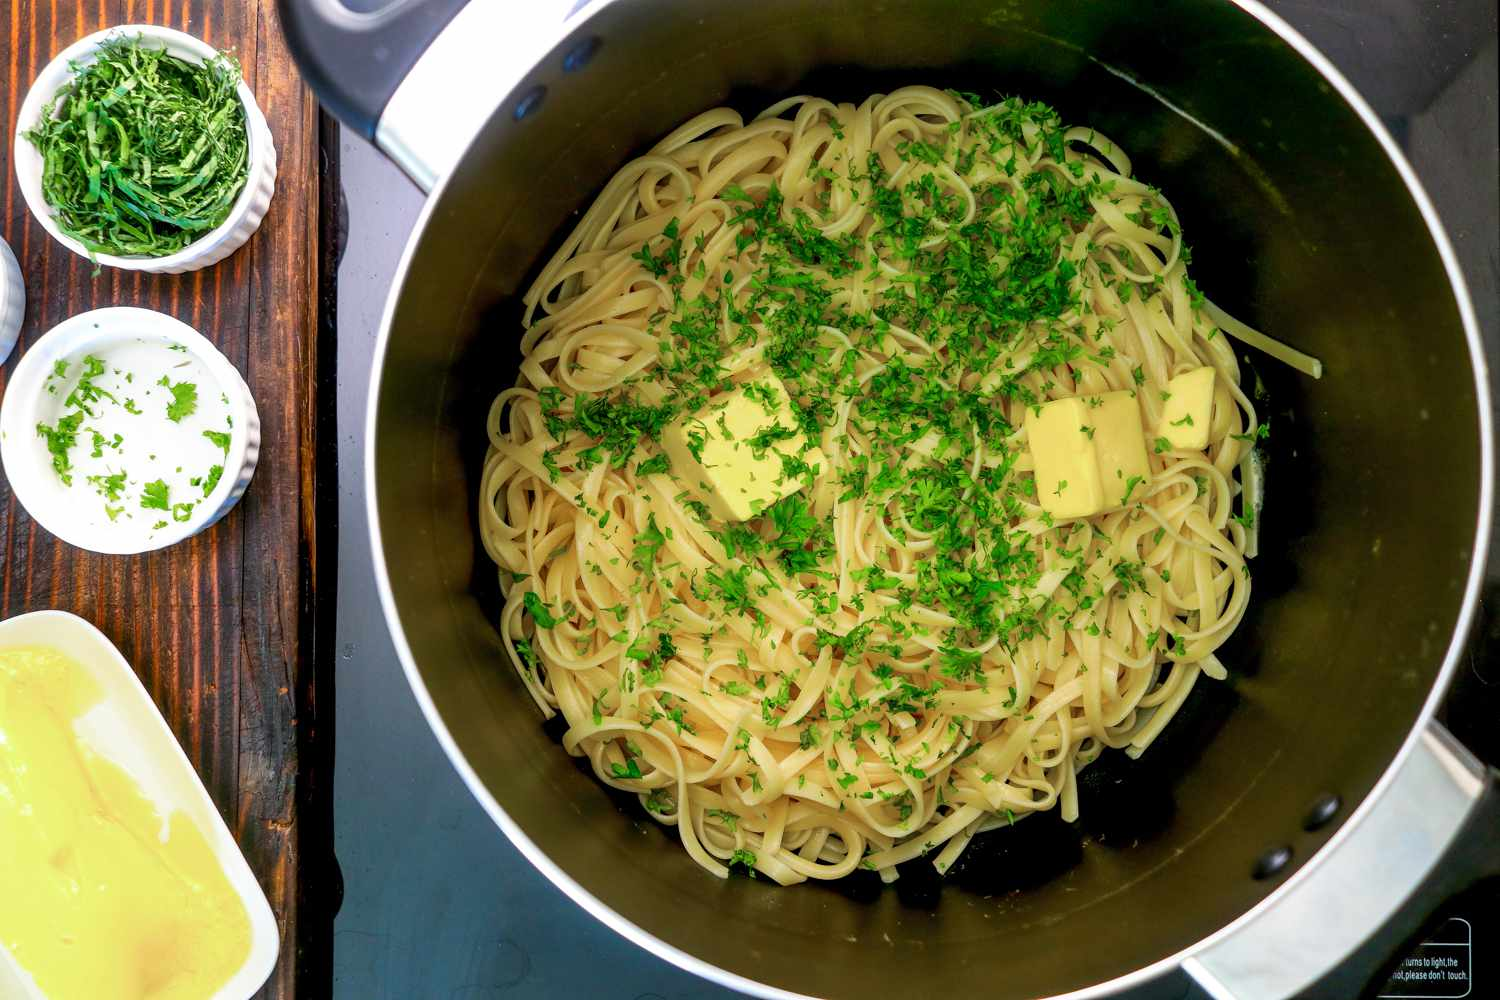 Butter, parsley, and basil are added to pasta and tossed